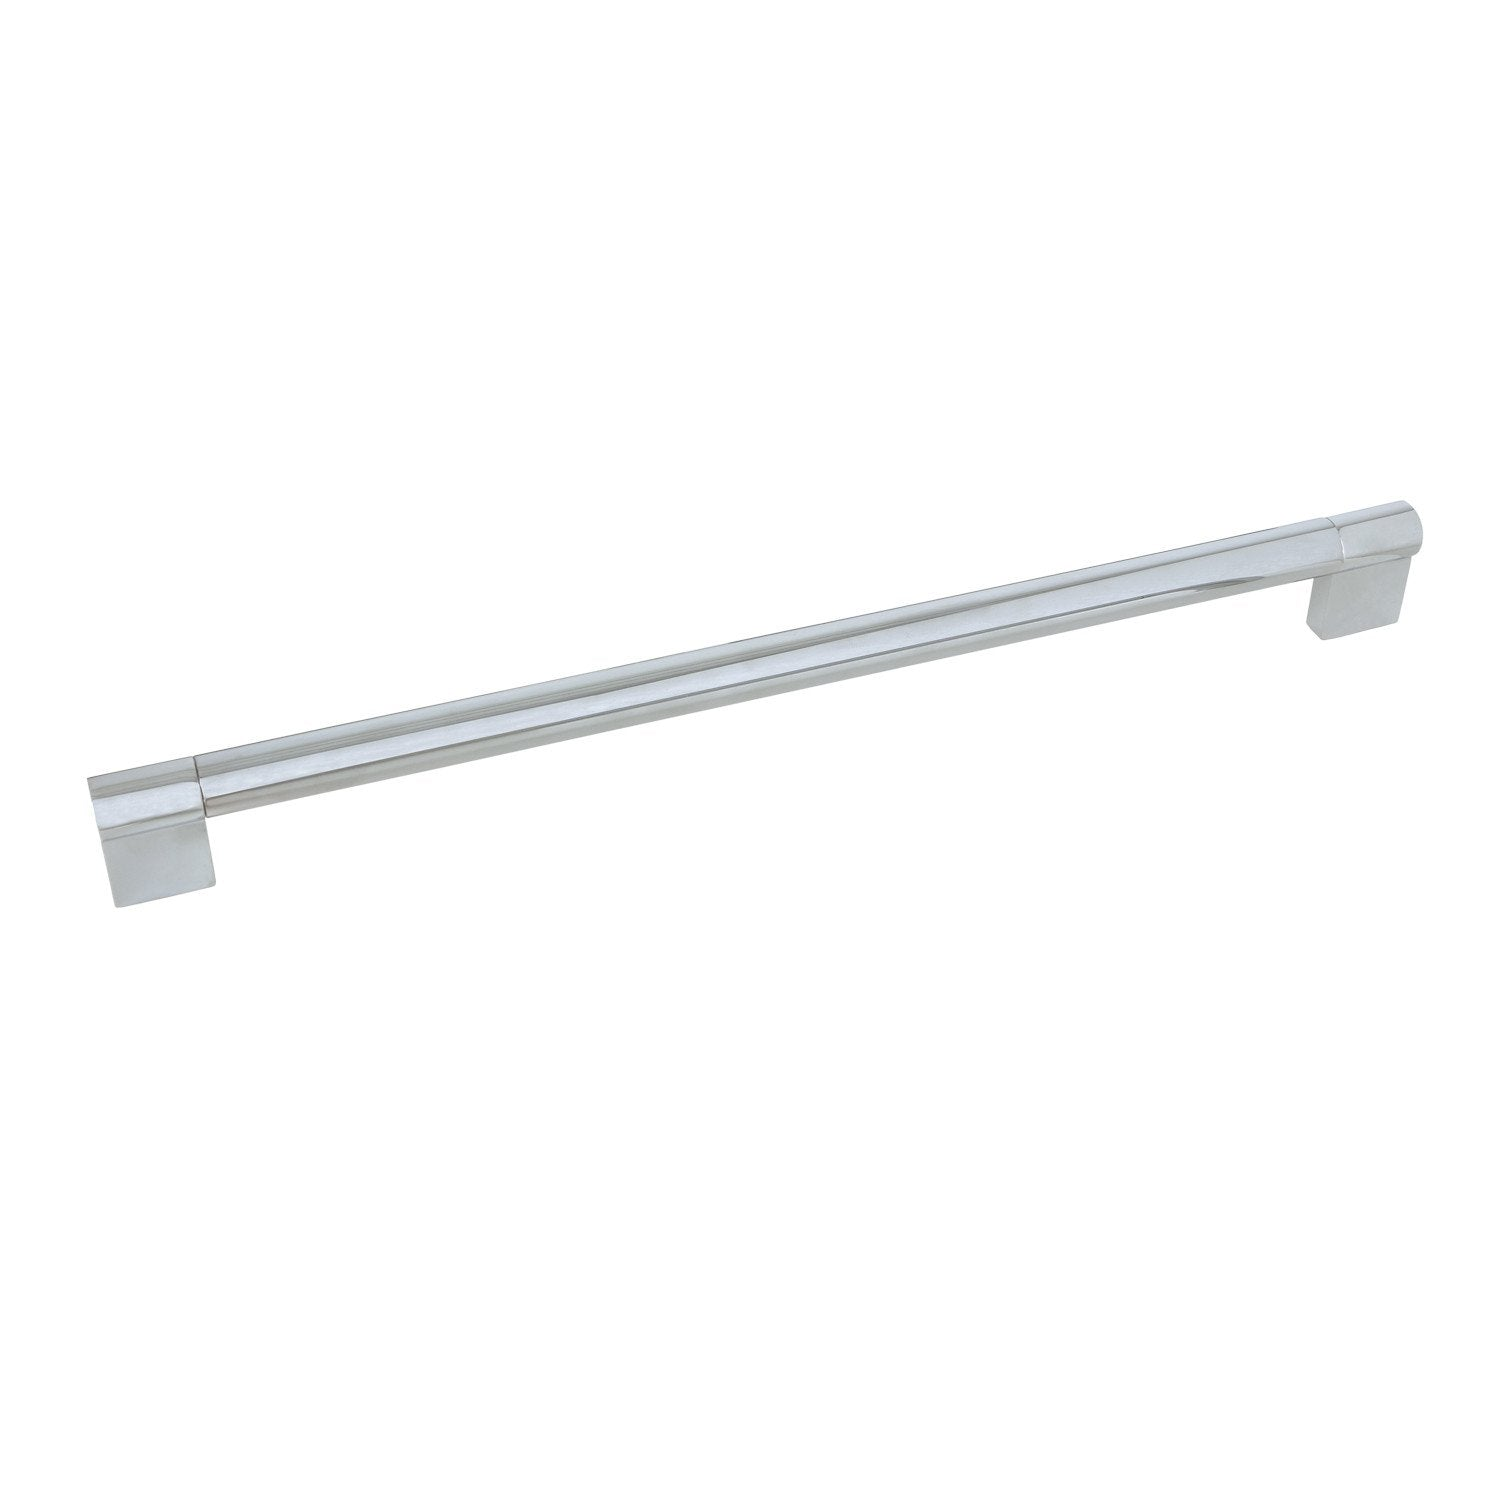 "Loft97 Viva Cabinet Pull, 12.5"" Center to Center, Polished Chrome"